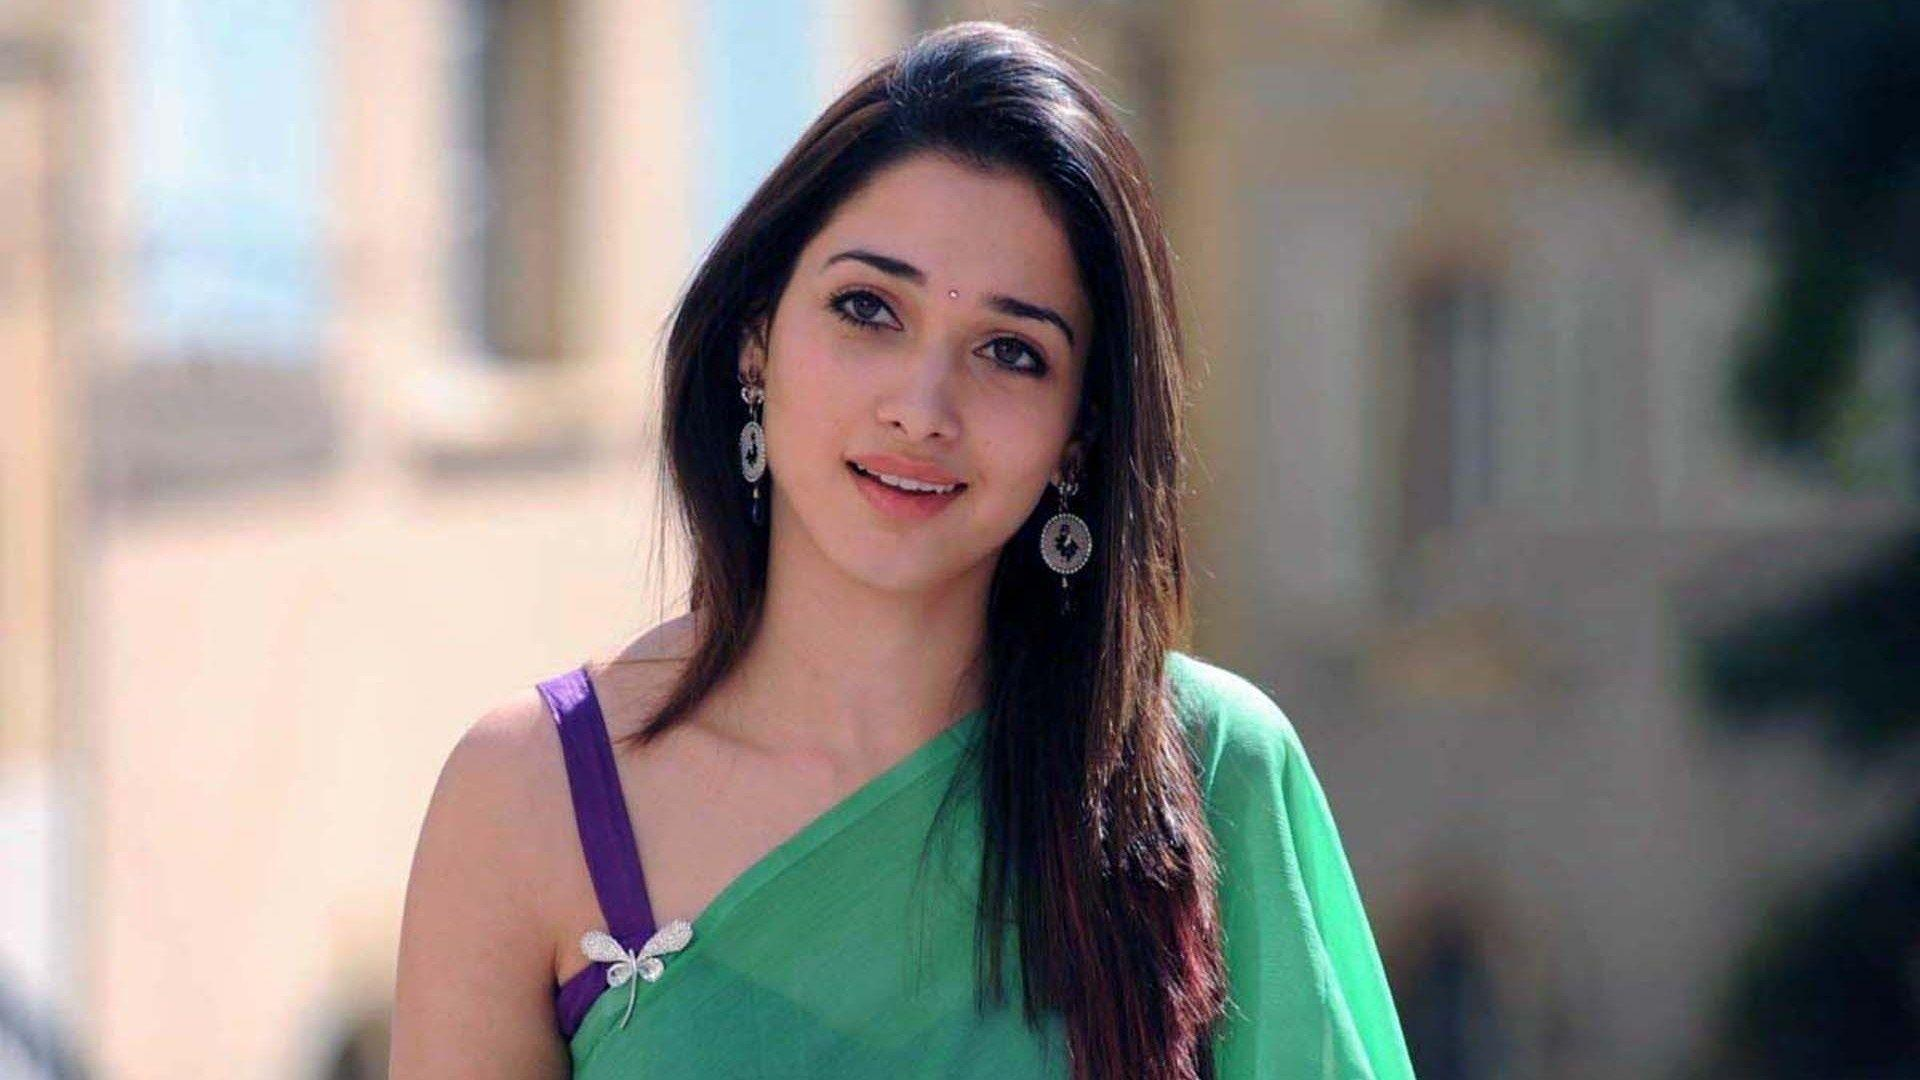 tamanna bhatia hd wallpapers in saree - wallpaper cave